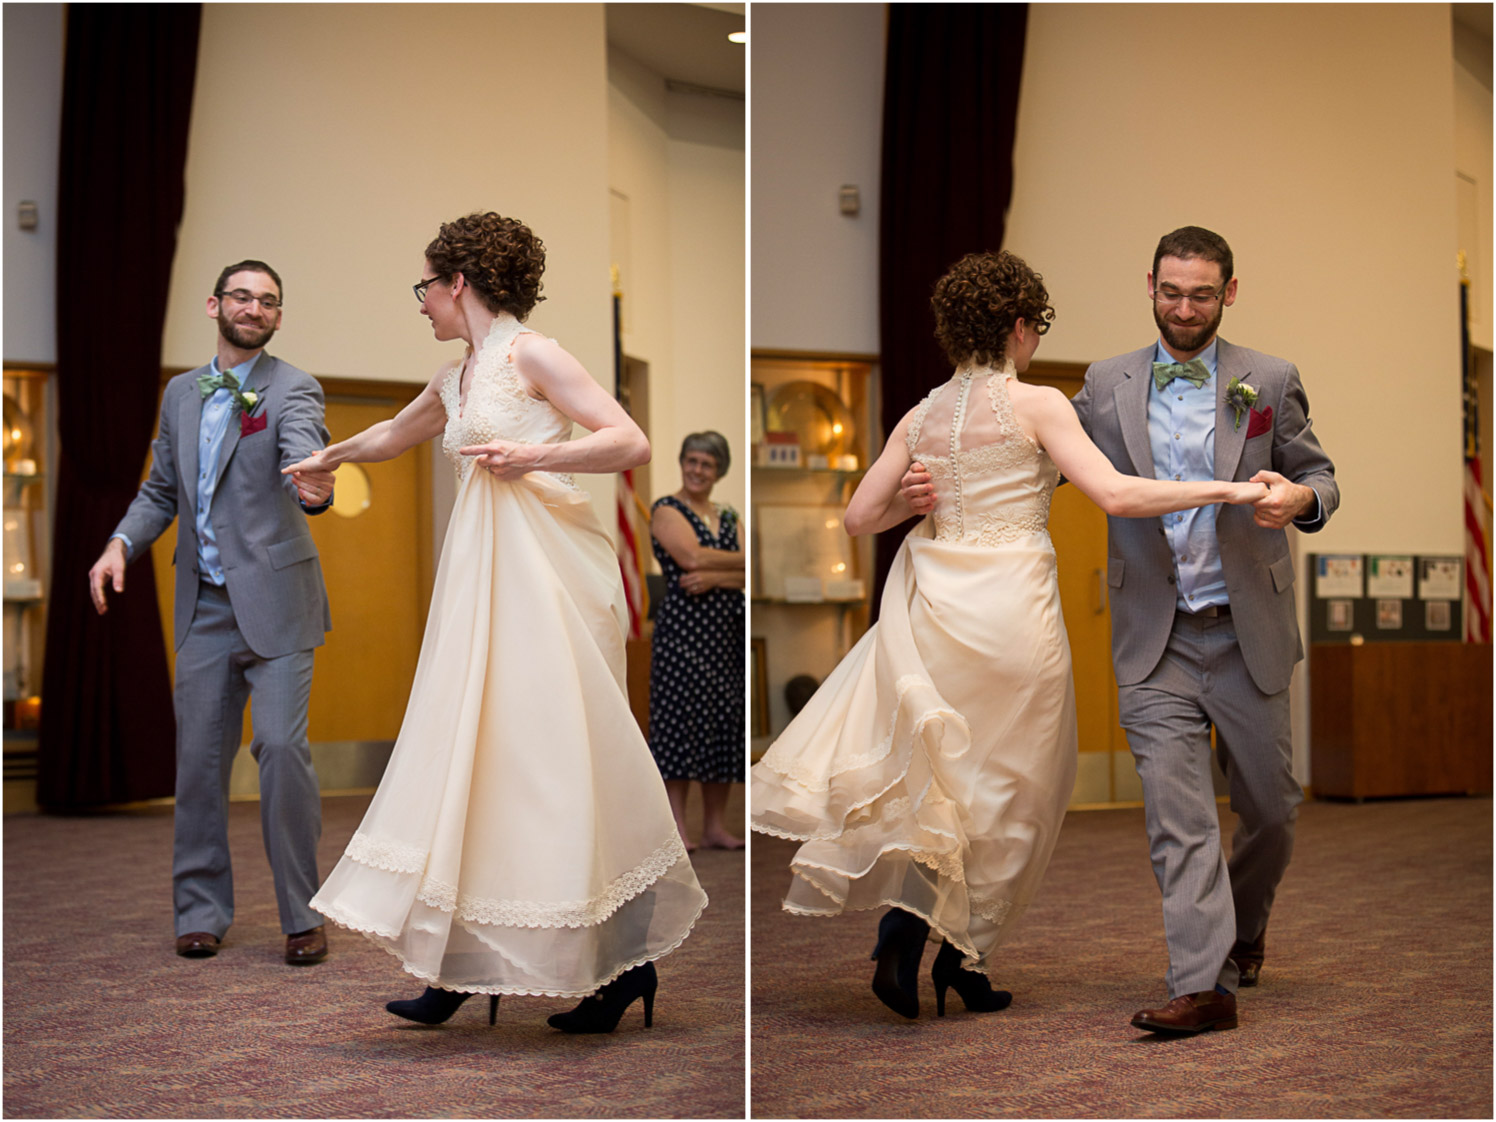 16-mount-zion-jewish-temple-wedding-reception-first-dance-mahonen-photography.jpg